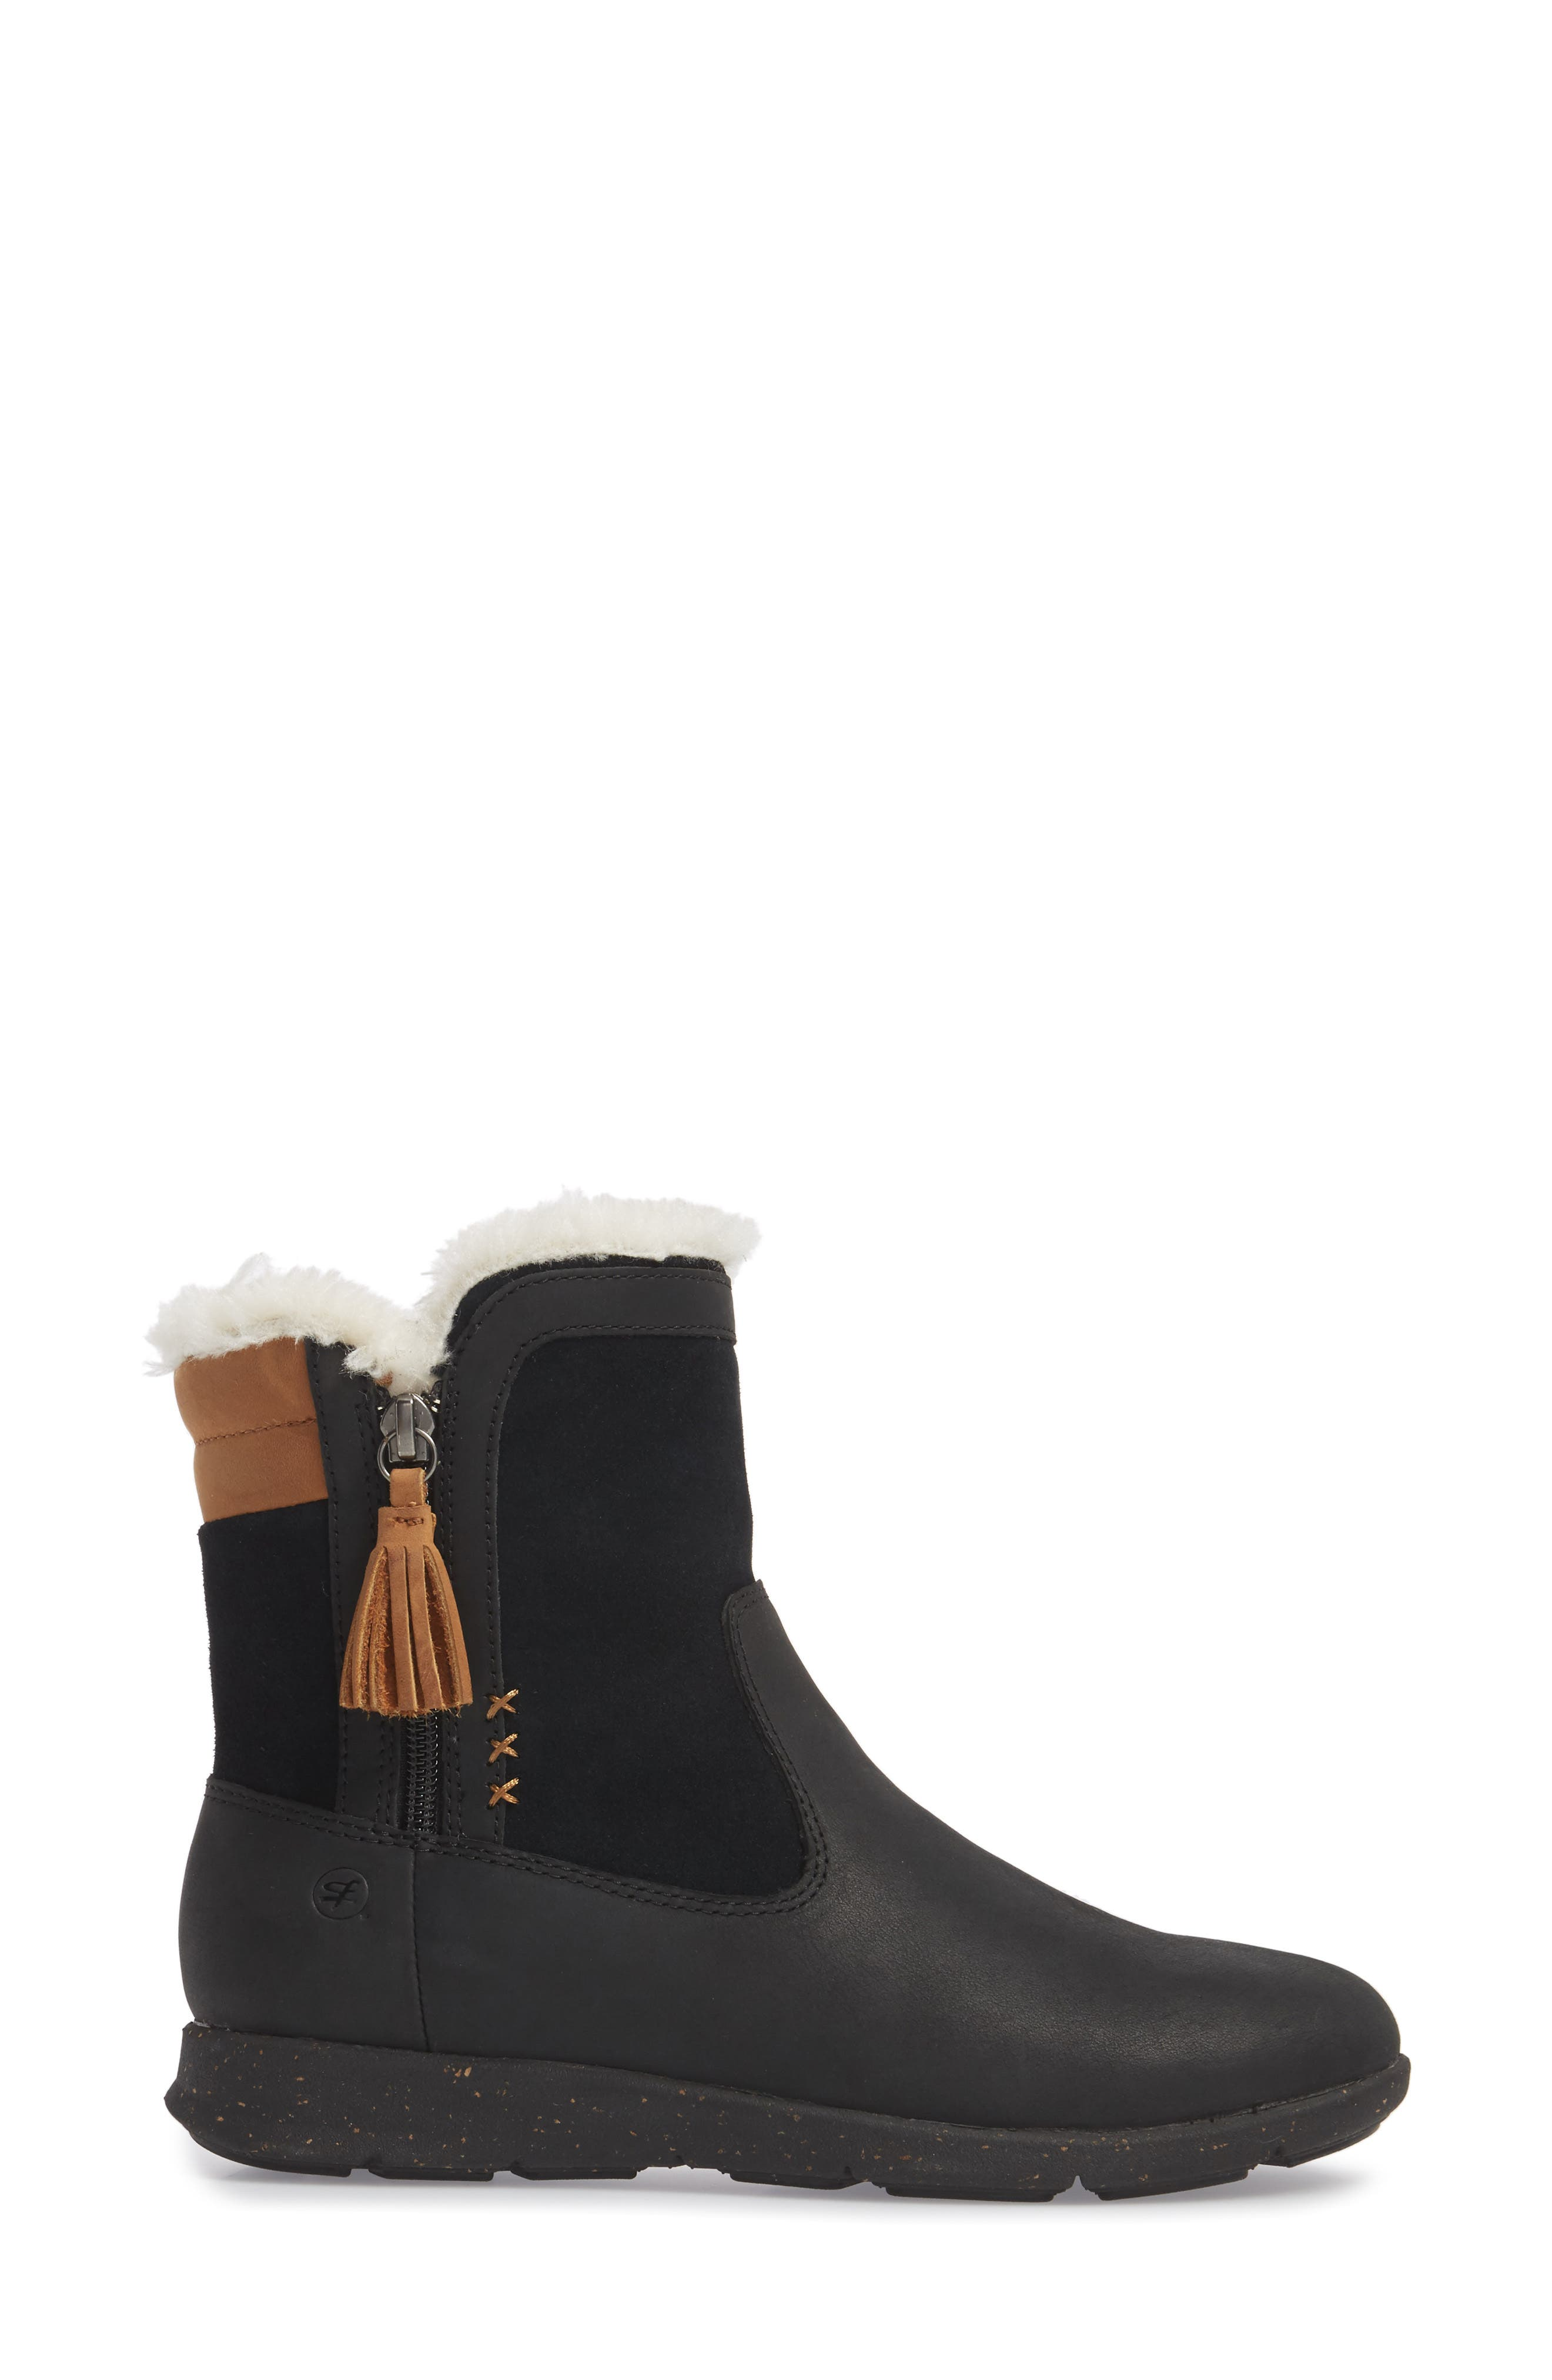 Juniper Faux Fur Lined Waterproof Bootie,                             Alternate thumbnail 3, color,                             Black Leather